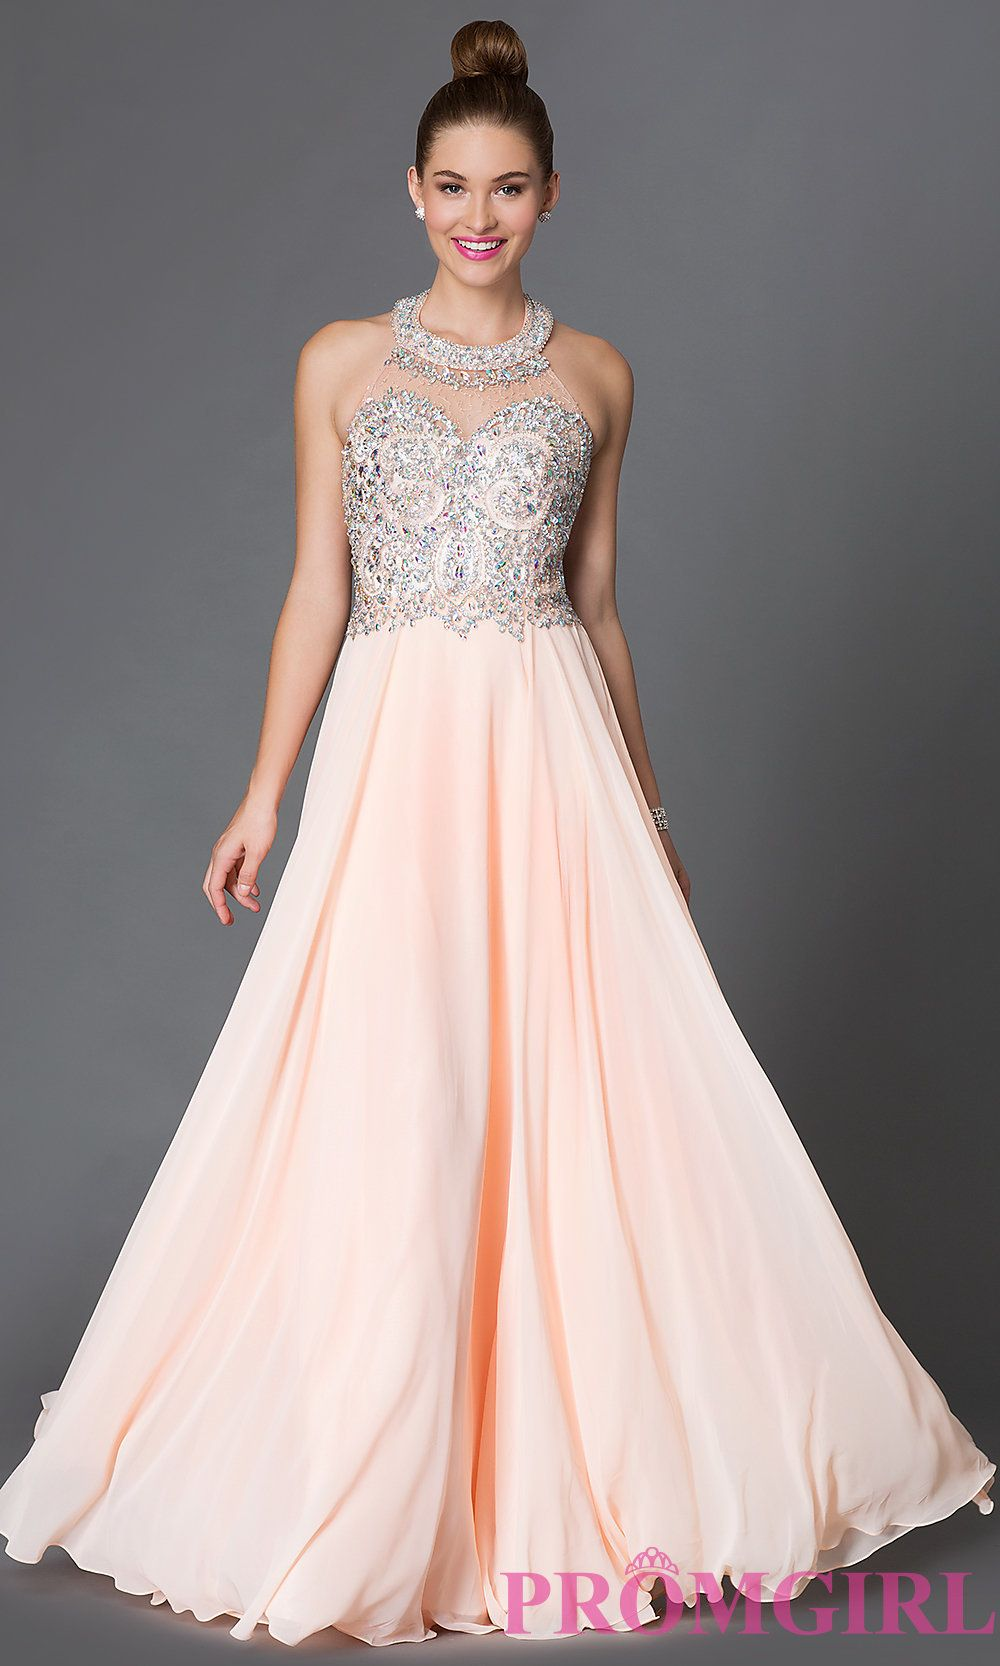 Long Halter Prom Dress with Jewel Embellished Bodice   Long ...